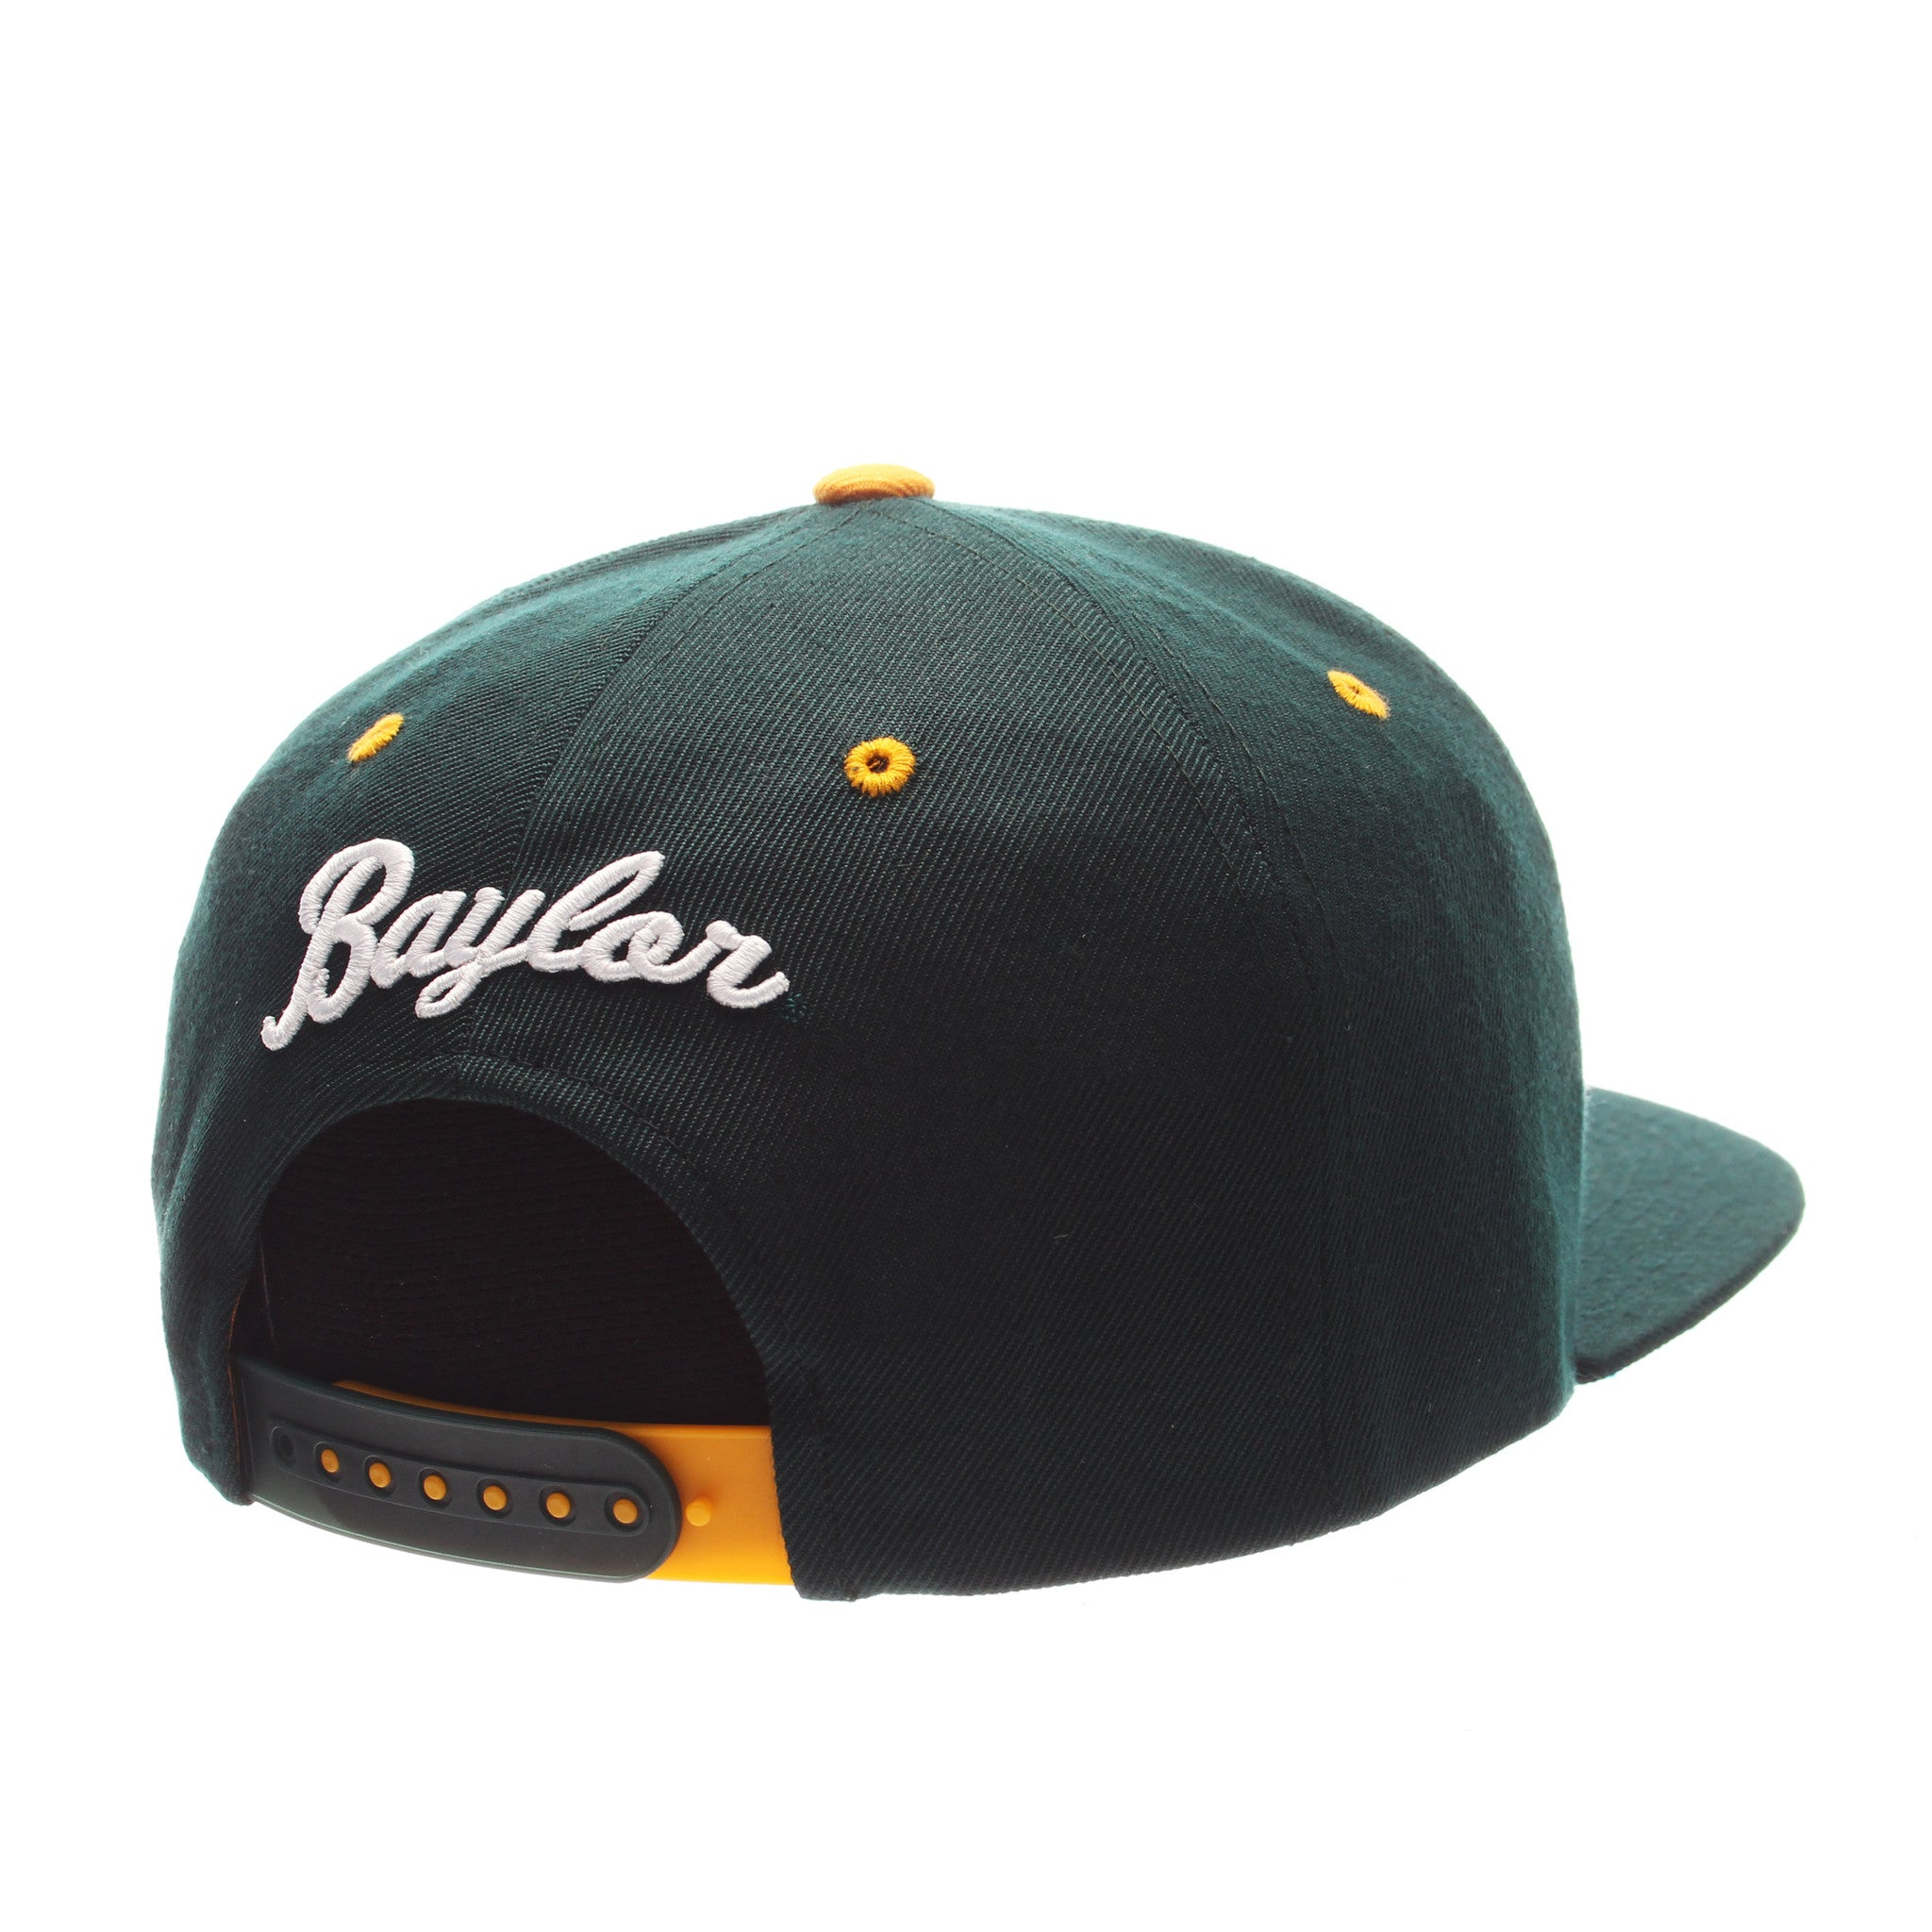 Baylor University Z11 32/5 (High) (BU) Forest Dark Zwool Adjustable hats by Zephyr